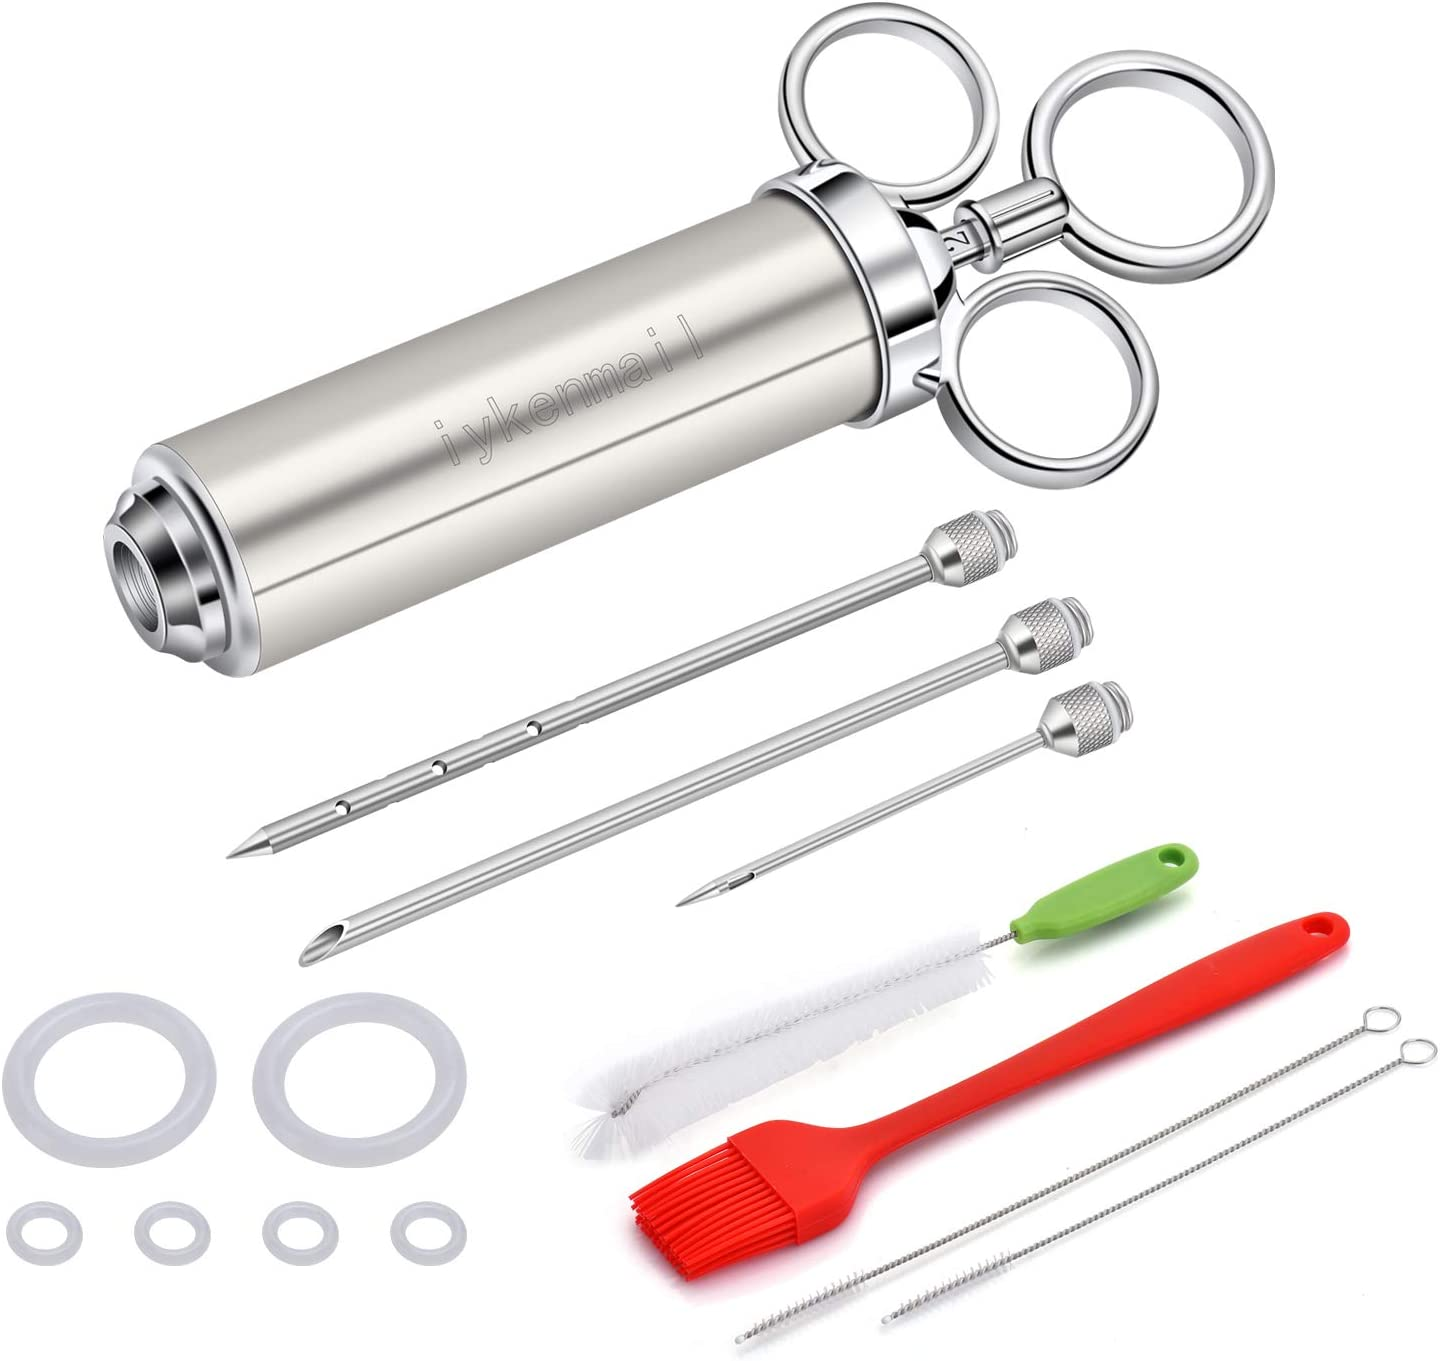 304 stainless steel injection needle syringe, 2 ounce syringe and 3 needles, used for BBQ Grill Smoker